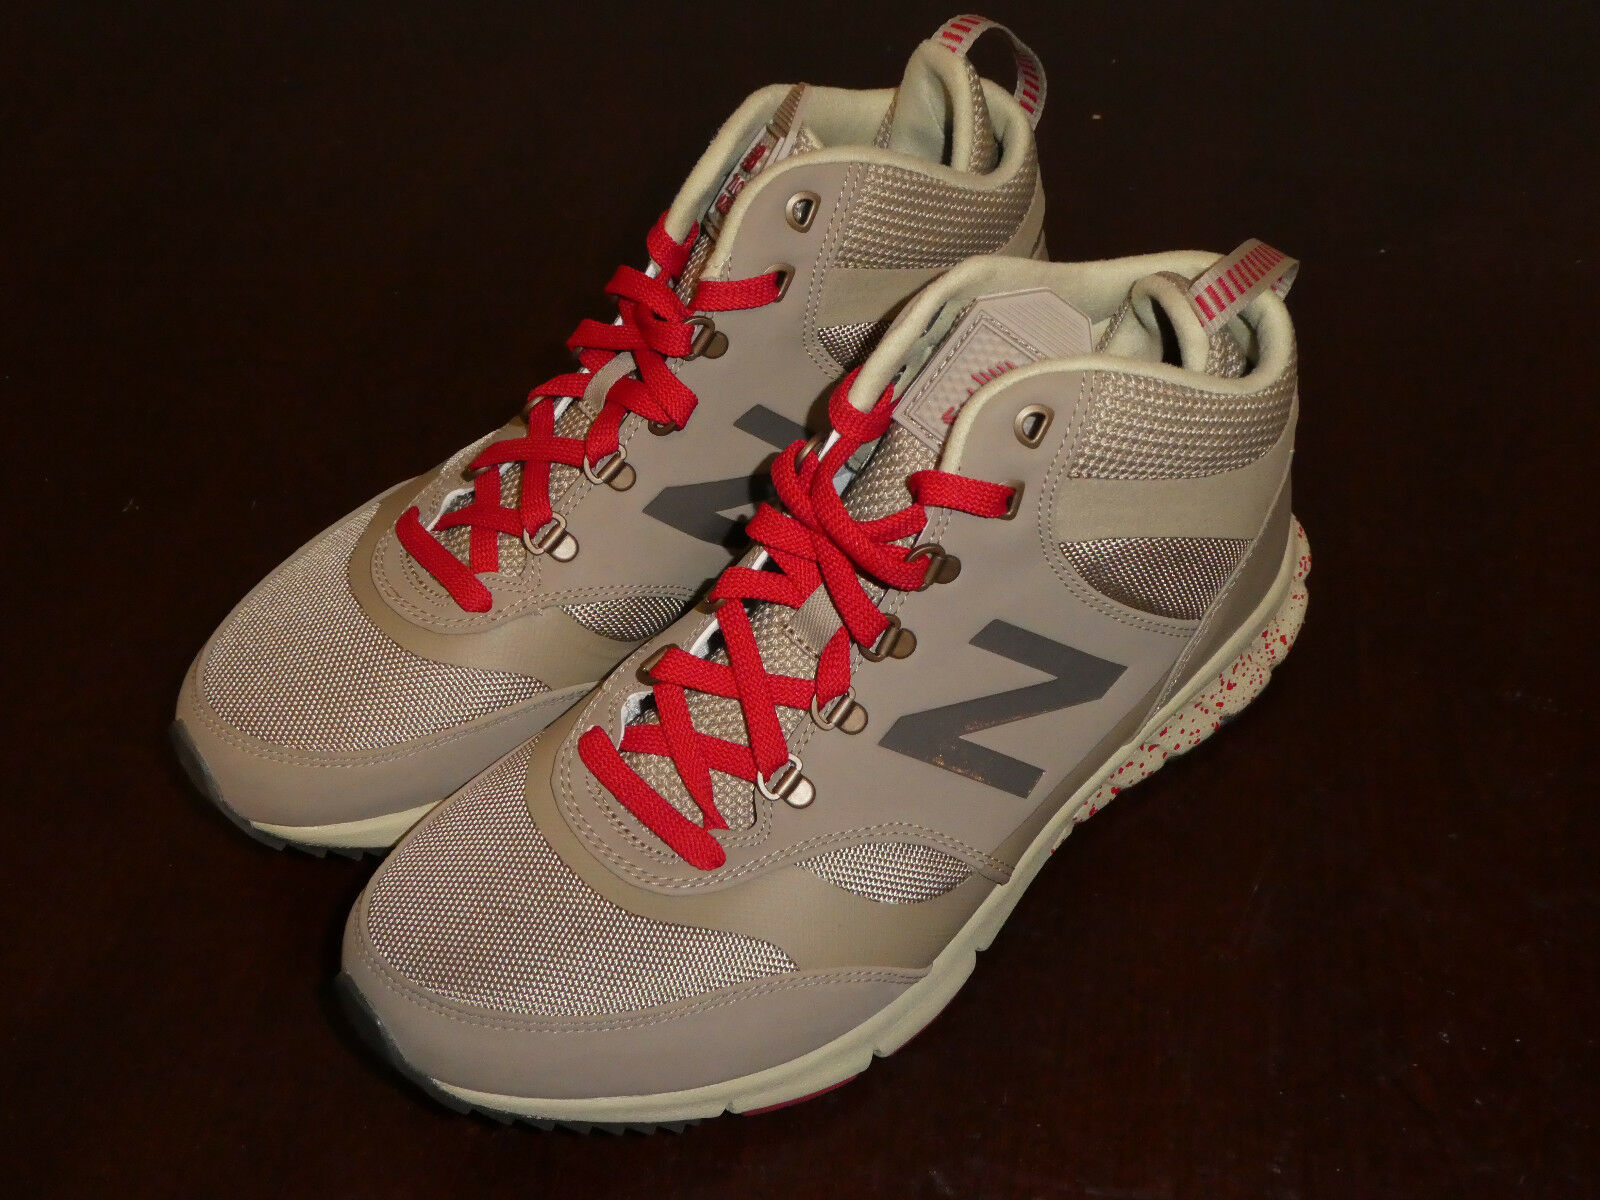 Mens New Balance 710 shoes HVL710AC Sneakers new Size 9.5